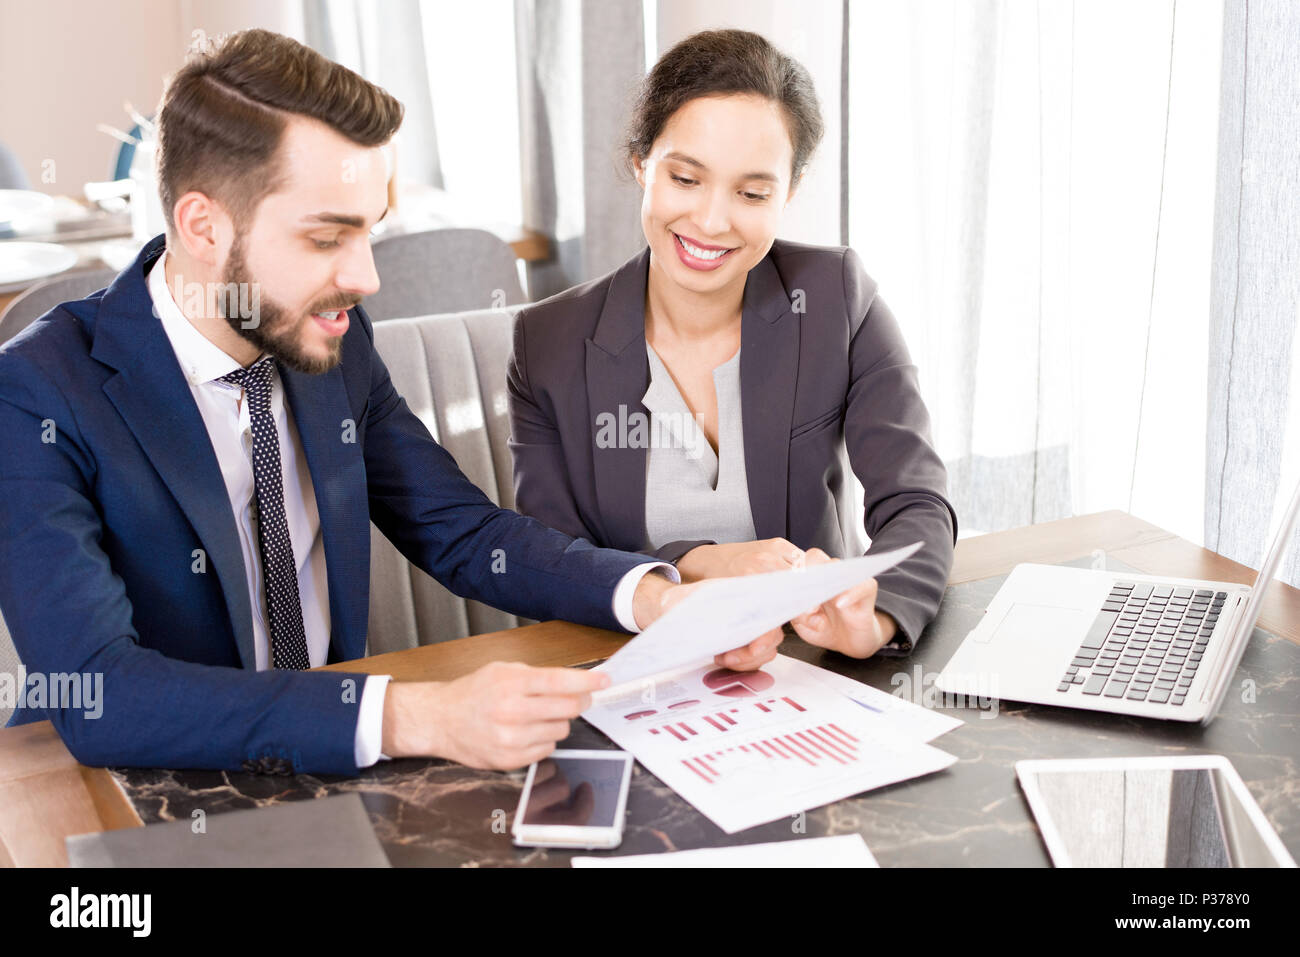 Optimistic forecasting managers discussing papers - Stock Image